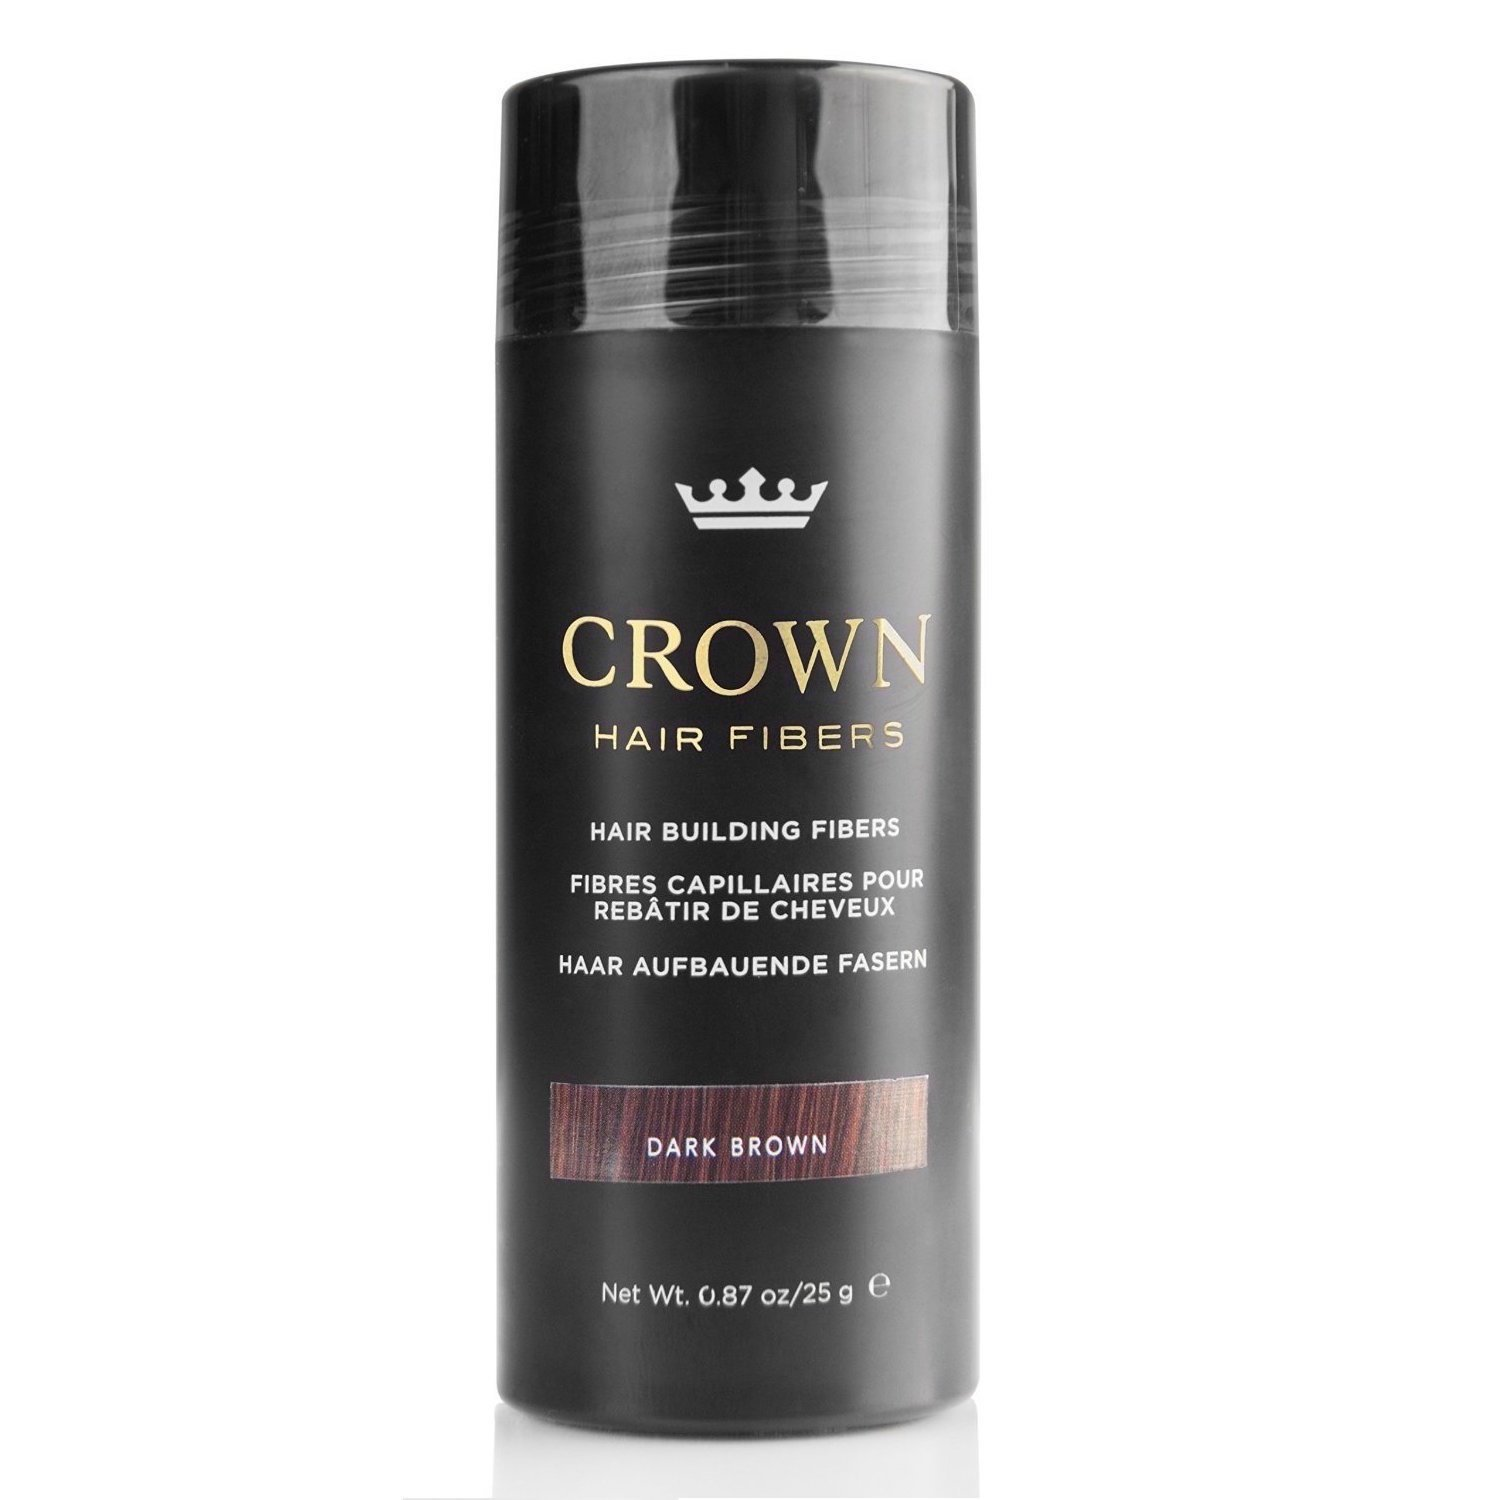 CROWN Hair Fibers - Best Keratin Hair Fibers Instantly Thickens Thinning Hair for Men and Women - Natural Hair Loss Concealer 0.87oz - Dark Brown